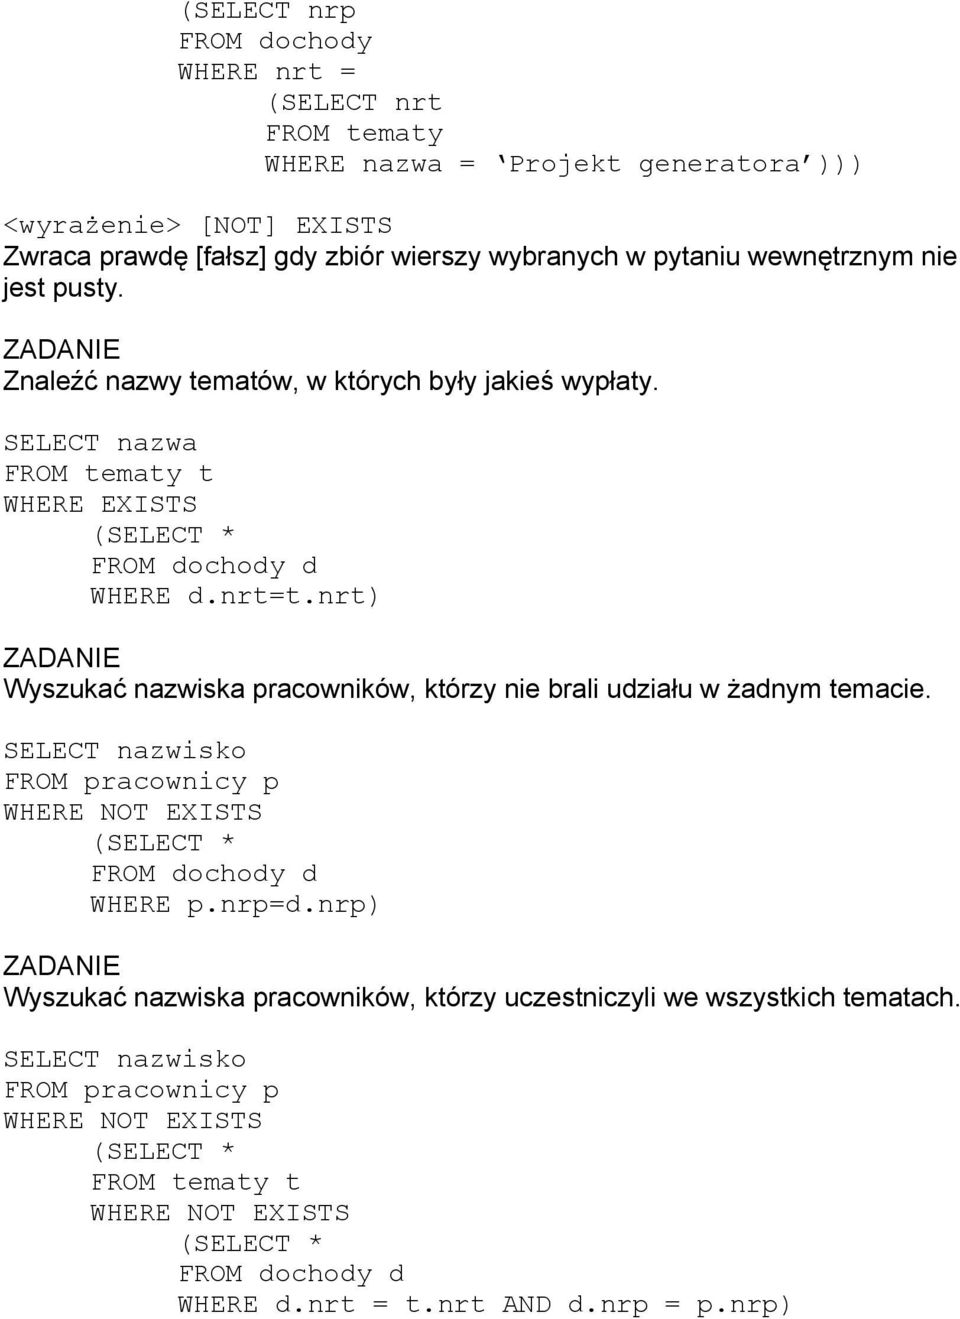 nrt) Wyszukać nazwiska pracowników, którzy nie brali udziału w żadnym temacie. SELECT nazwisko FROM pracownicy p WHERE NOT EXISTS (SELECT * FROM dochody d WHERE p.nrp=d.